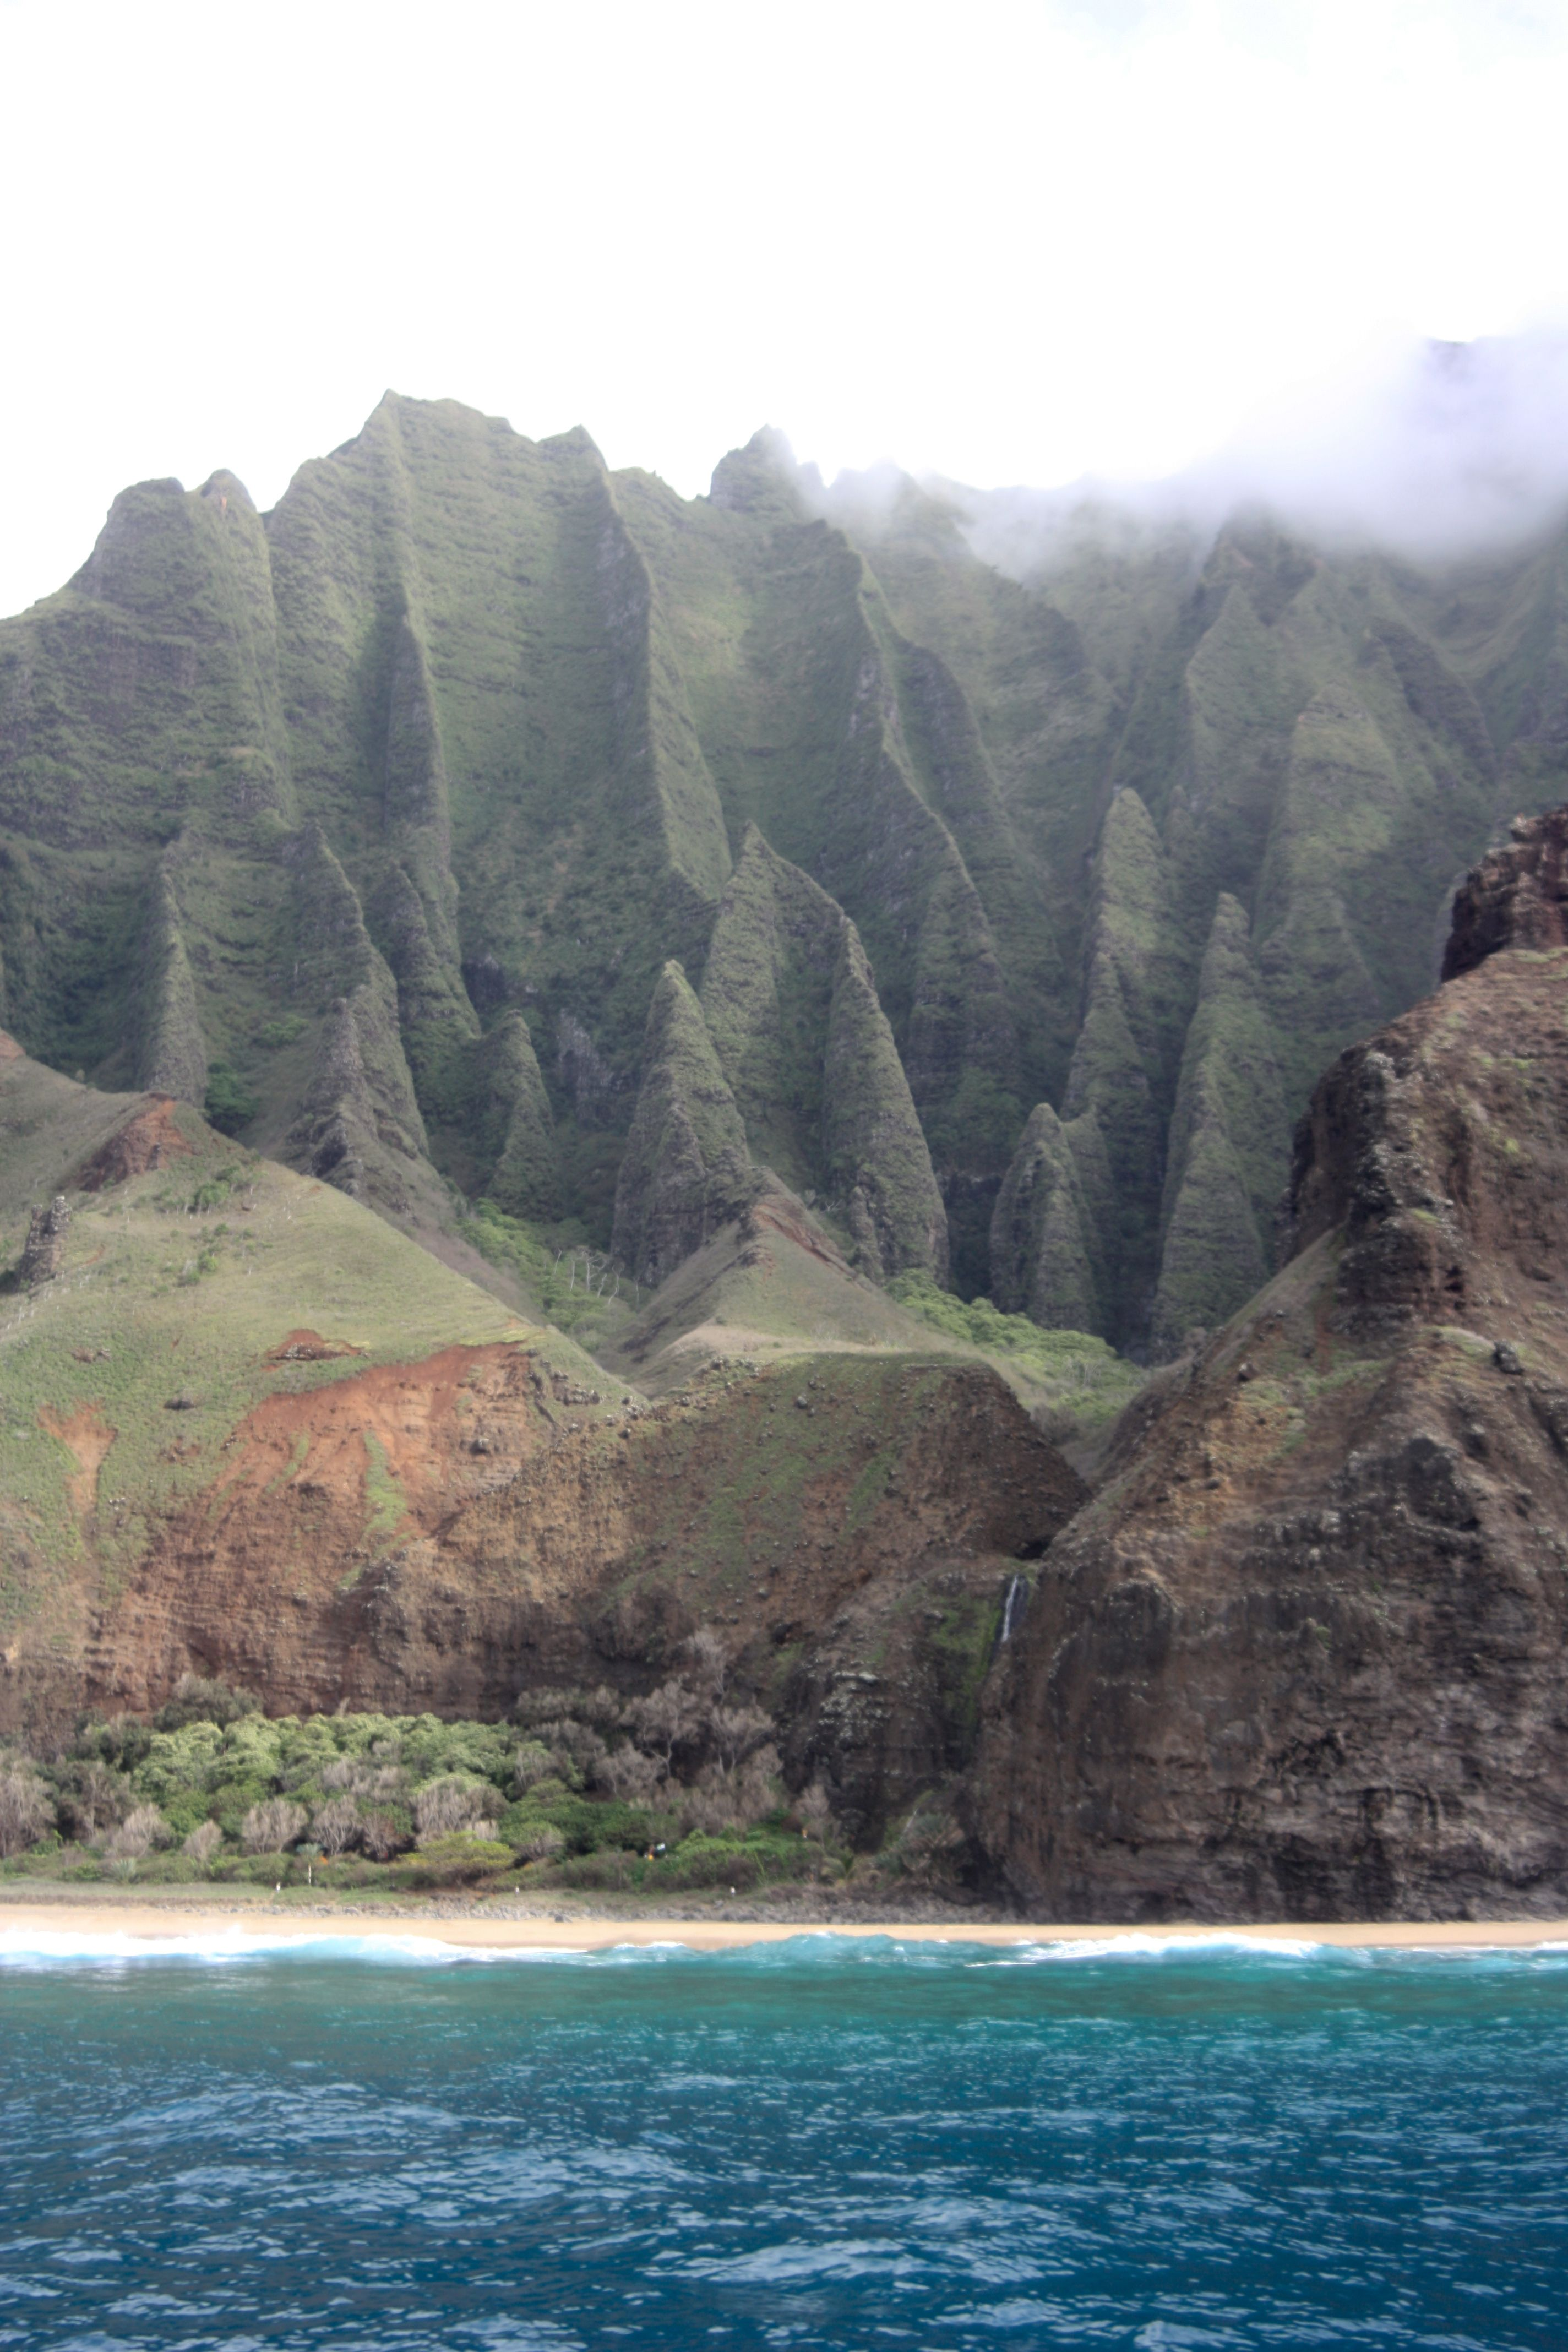 Na Pali Coast Kauai Many Movies Have Been Filmed Here South Pacific Six Days And Seven Nights Jurassic P Jurassic Park Movie Jurassic Park South Pacific